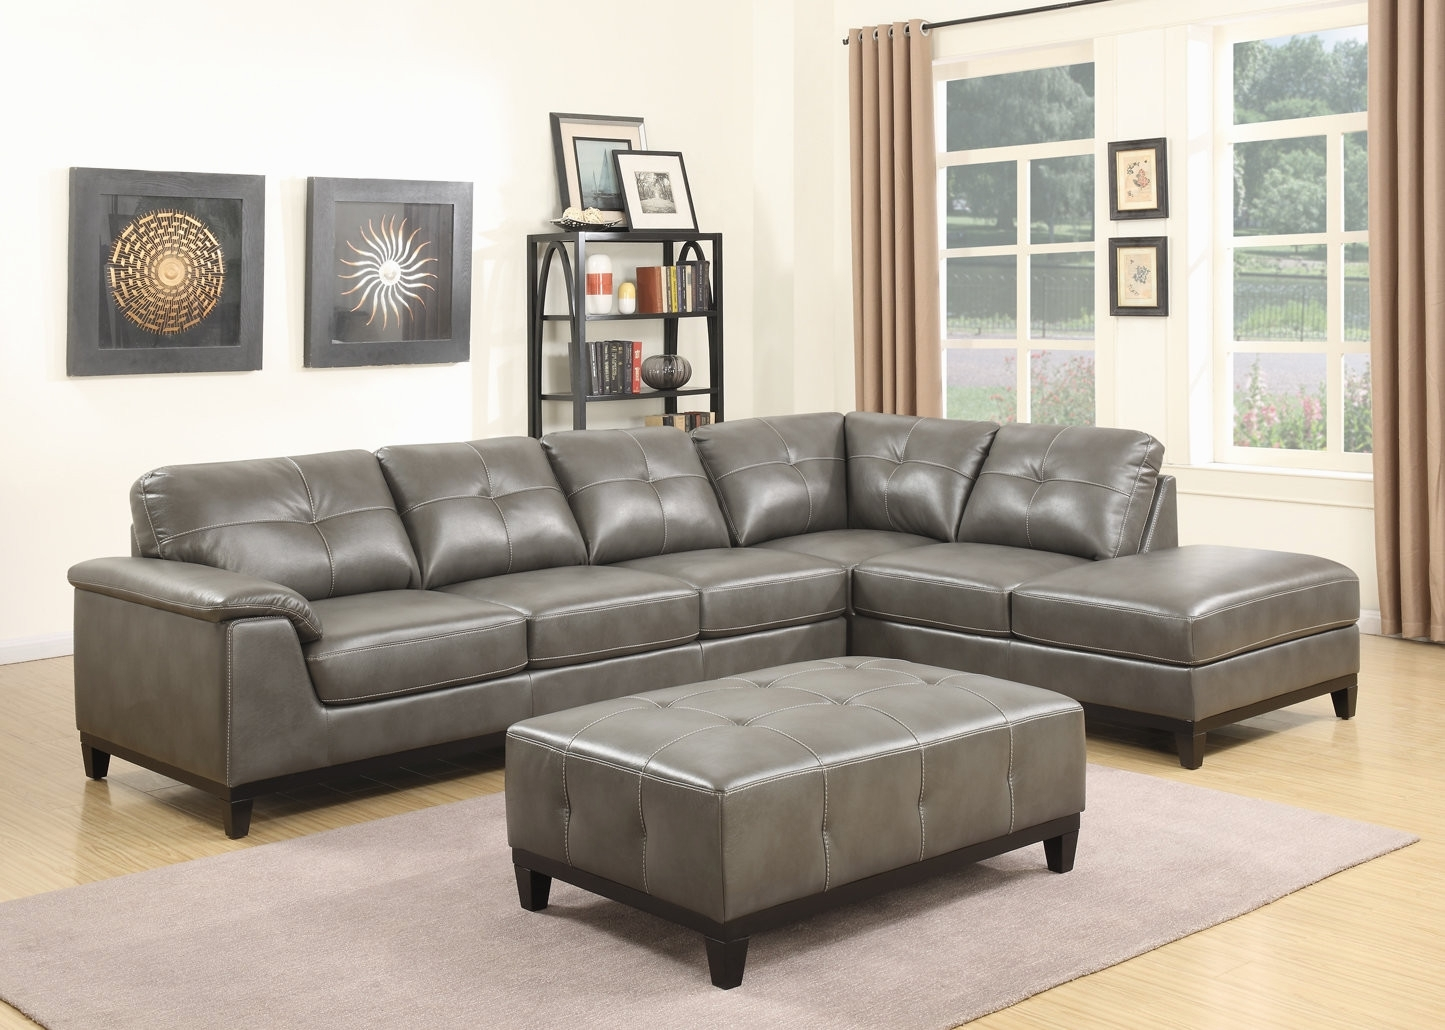 Living Room Sofa With Chaise Beautiful Trent Austin Design Lonato Pertaining To Aquarius Light Grey 2 Piece Sectionals With Raf Chaise (Image 14 of 25)